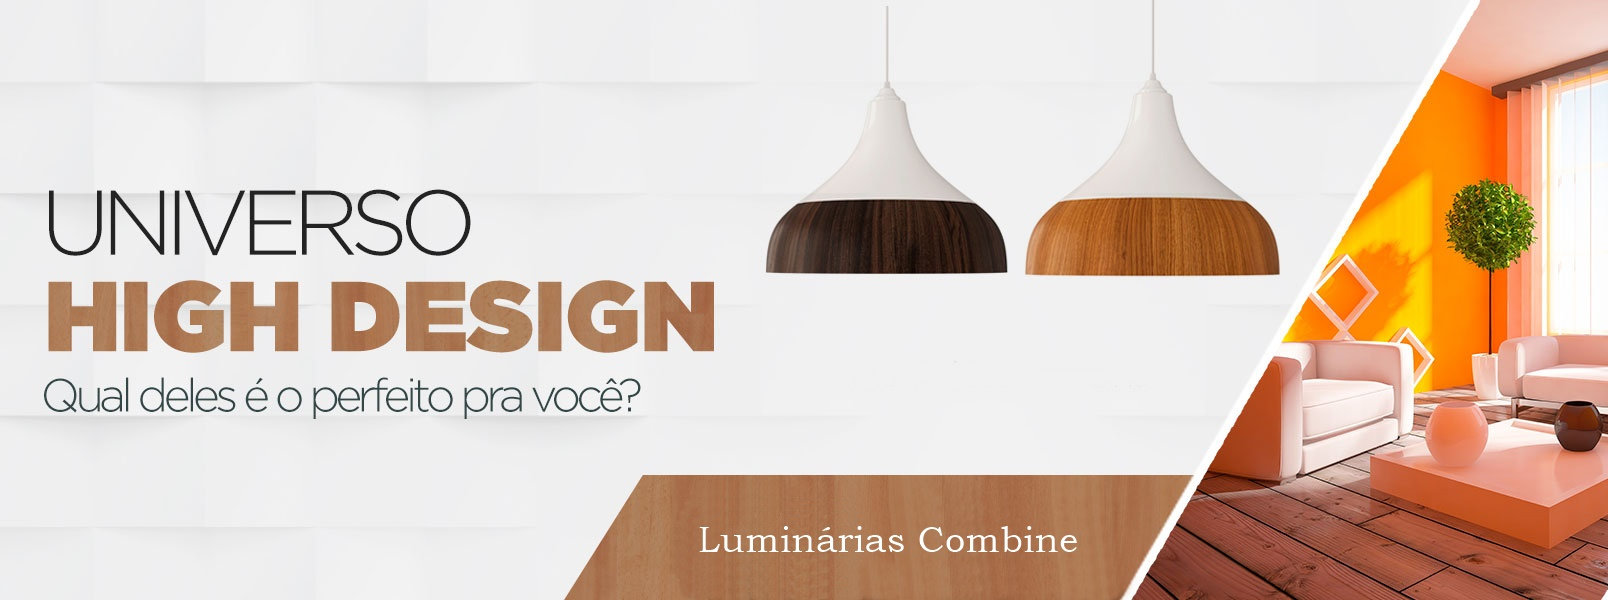 Ventiladores e Luminárias Spirit - Blog Myspirit - High Design Expo - Universo High Design Spirit - High Design 2018